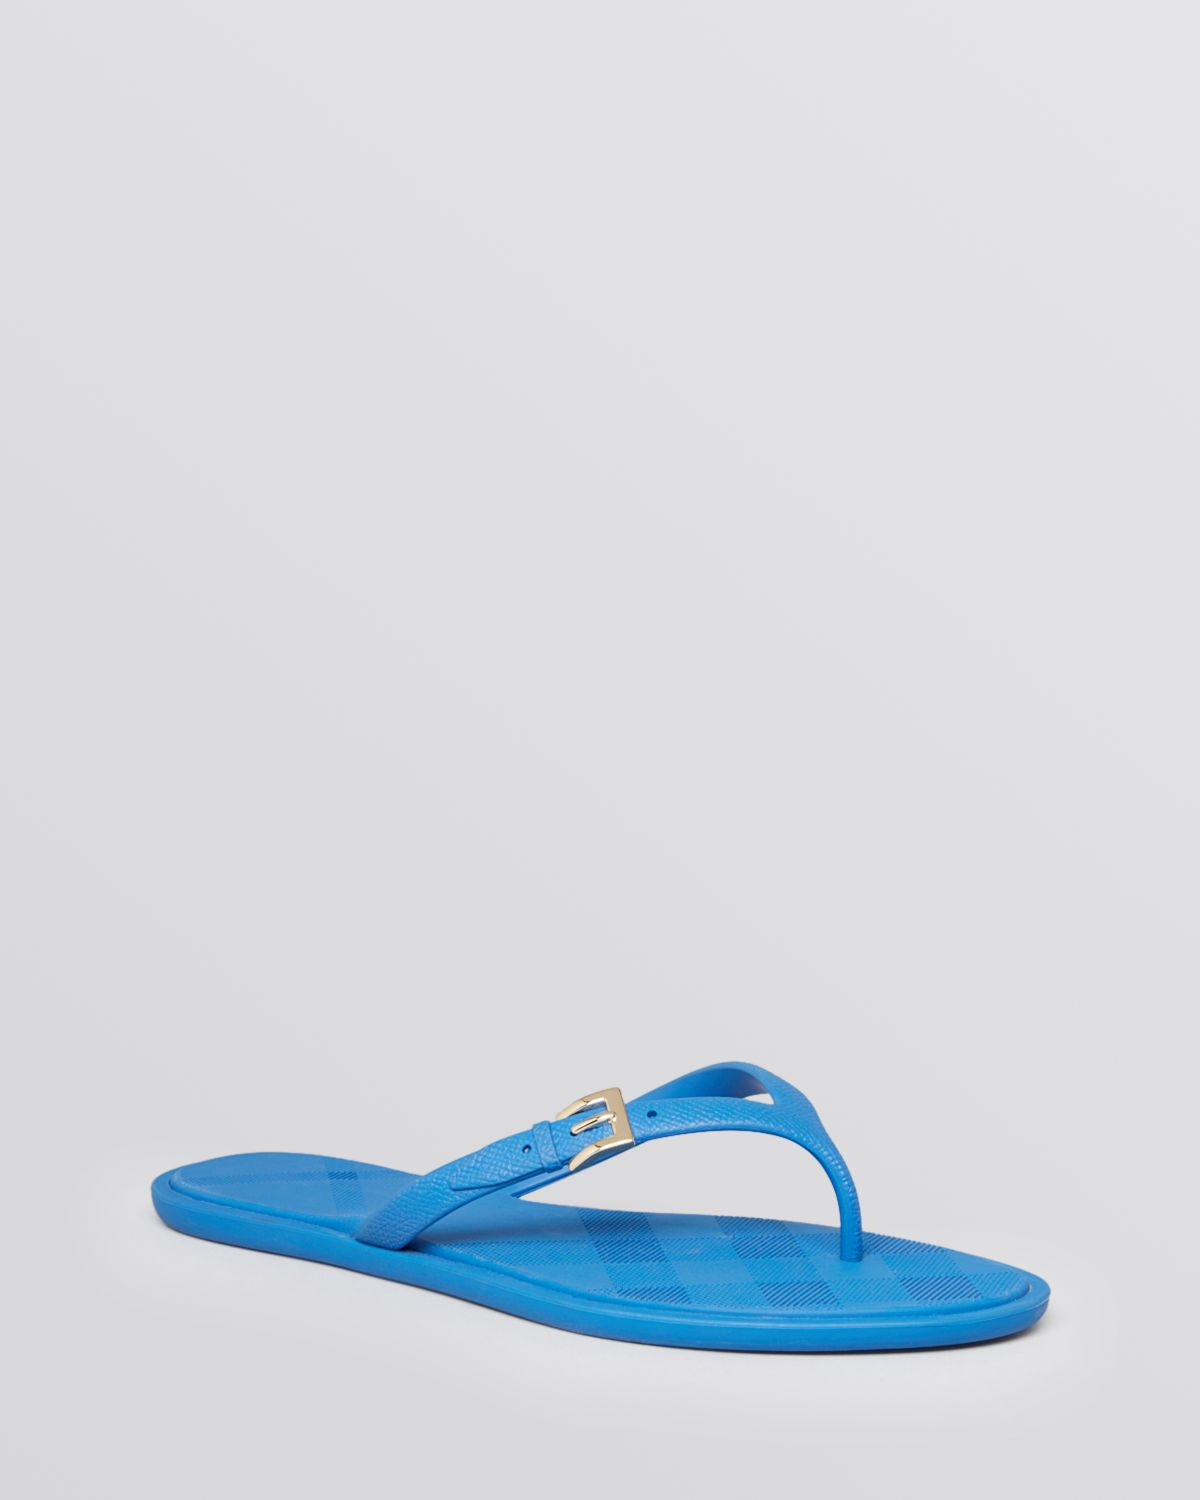 b2e6f3a5b515 Lyst - Burberry Jelly Thong Flip Flop Sandals Wallford Flat in Blue